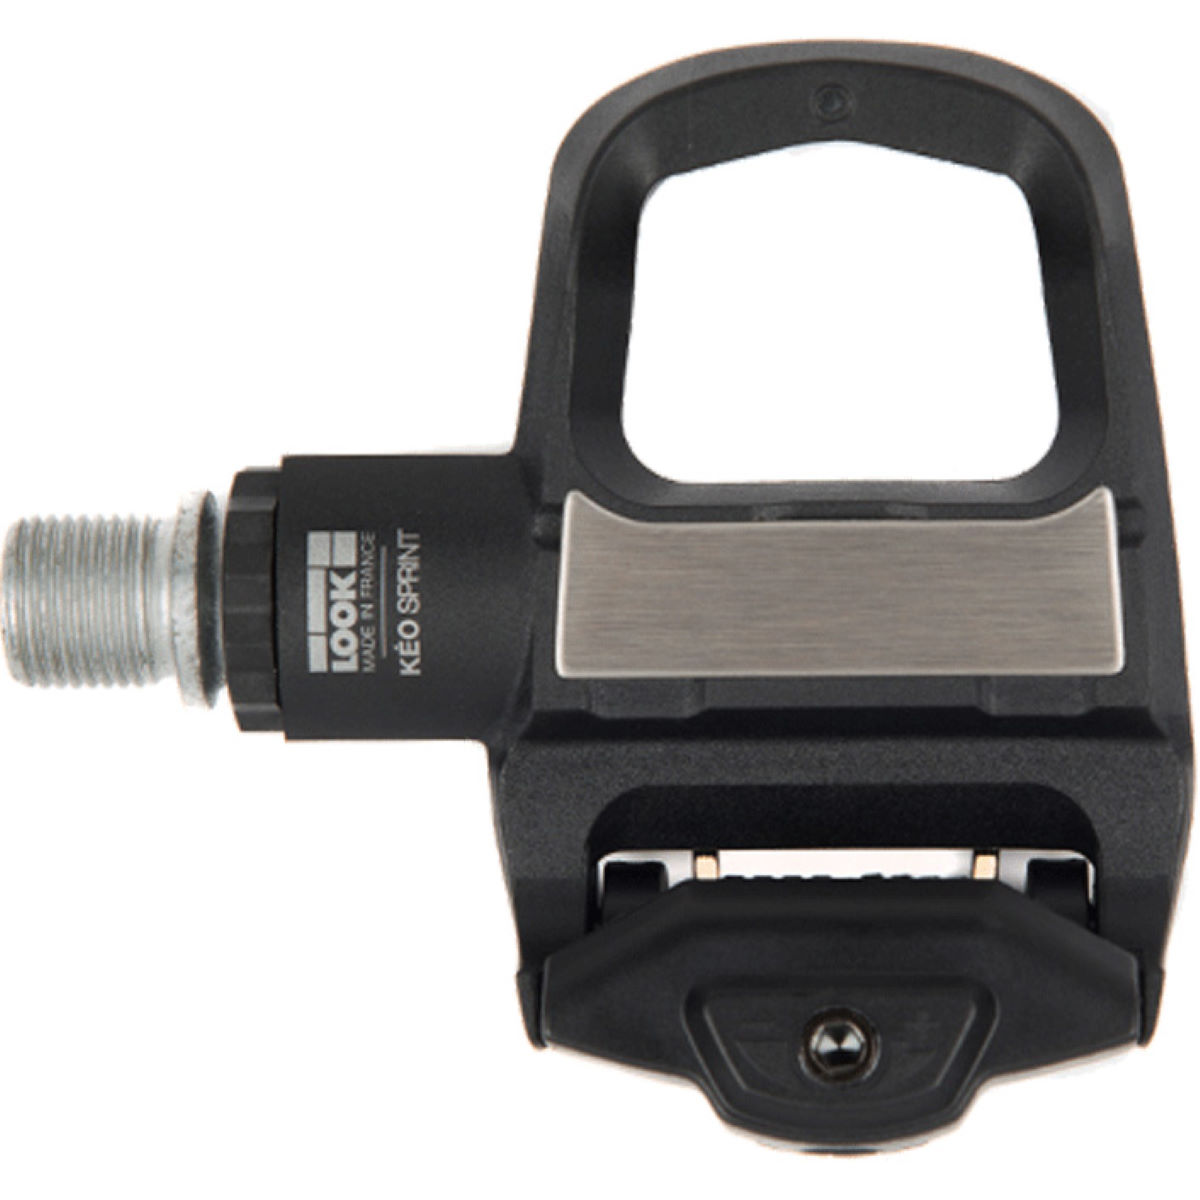 Look Keo Sprint Pedals Clip-in Pedals